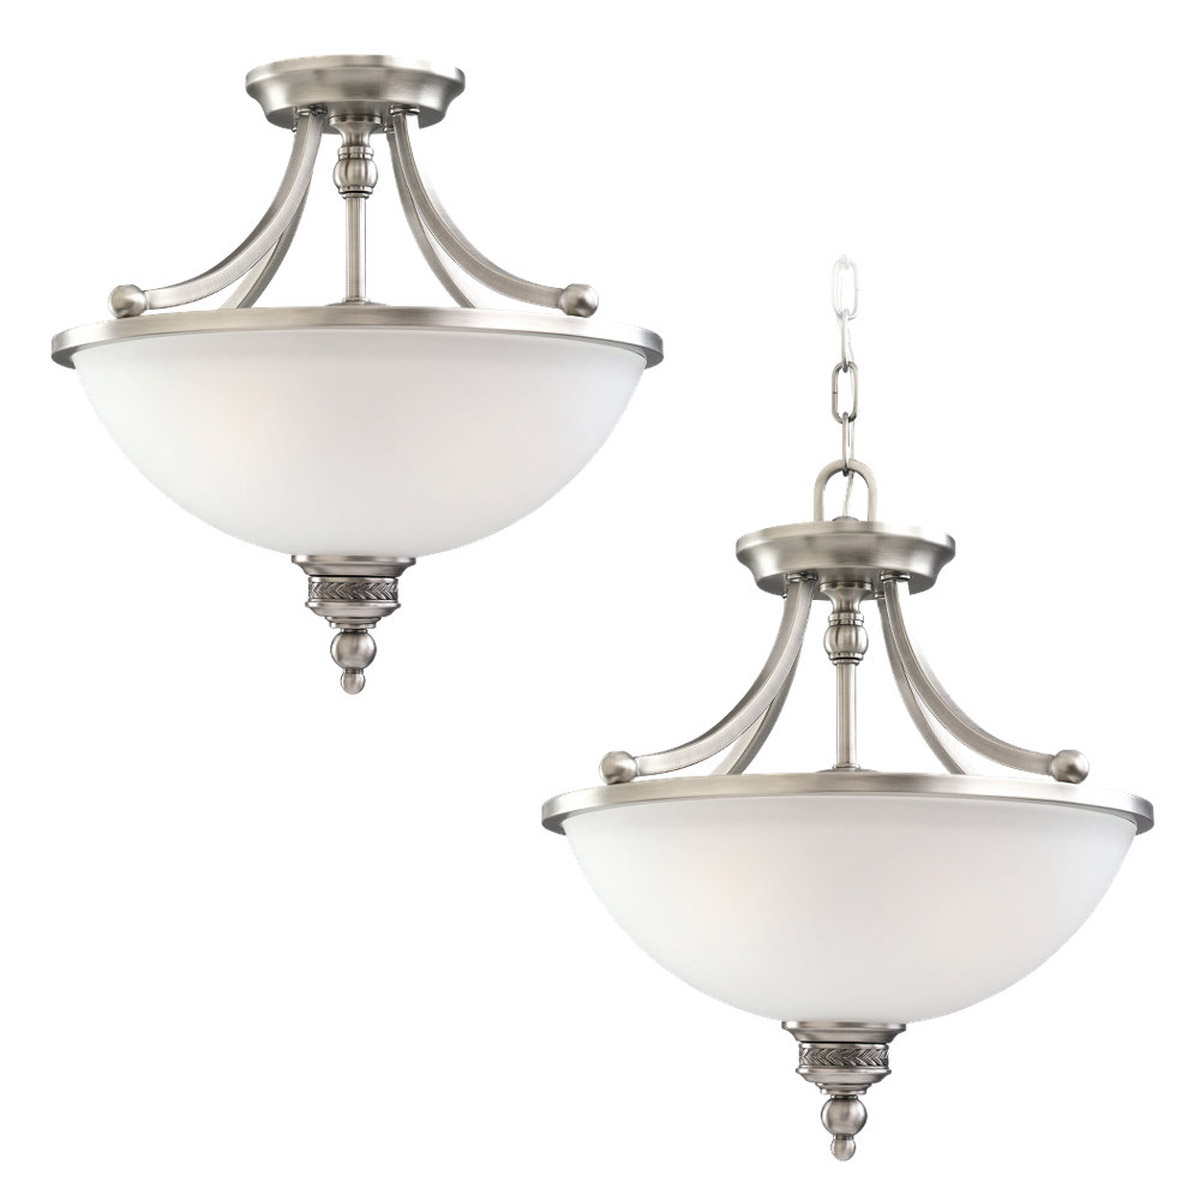 Sea Gull 77350-965 Laurel Leaf 2 Light 16 inch Antique Brushed Nickel Semi-Flush Mount Ceiling Light photo